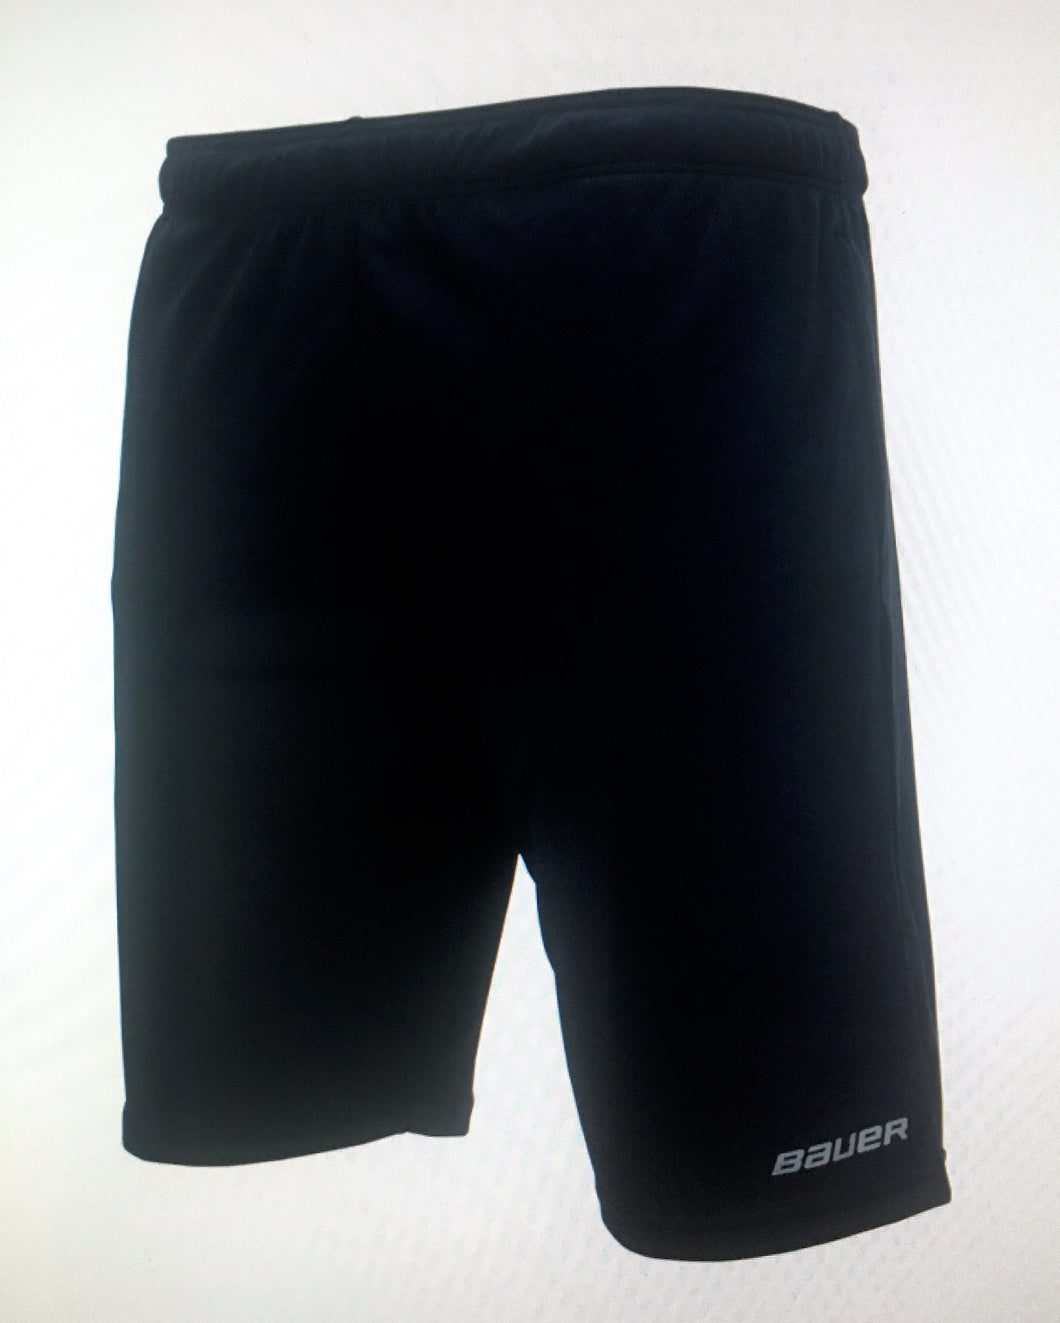 Bauer Core Athletic shorts